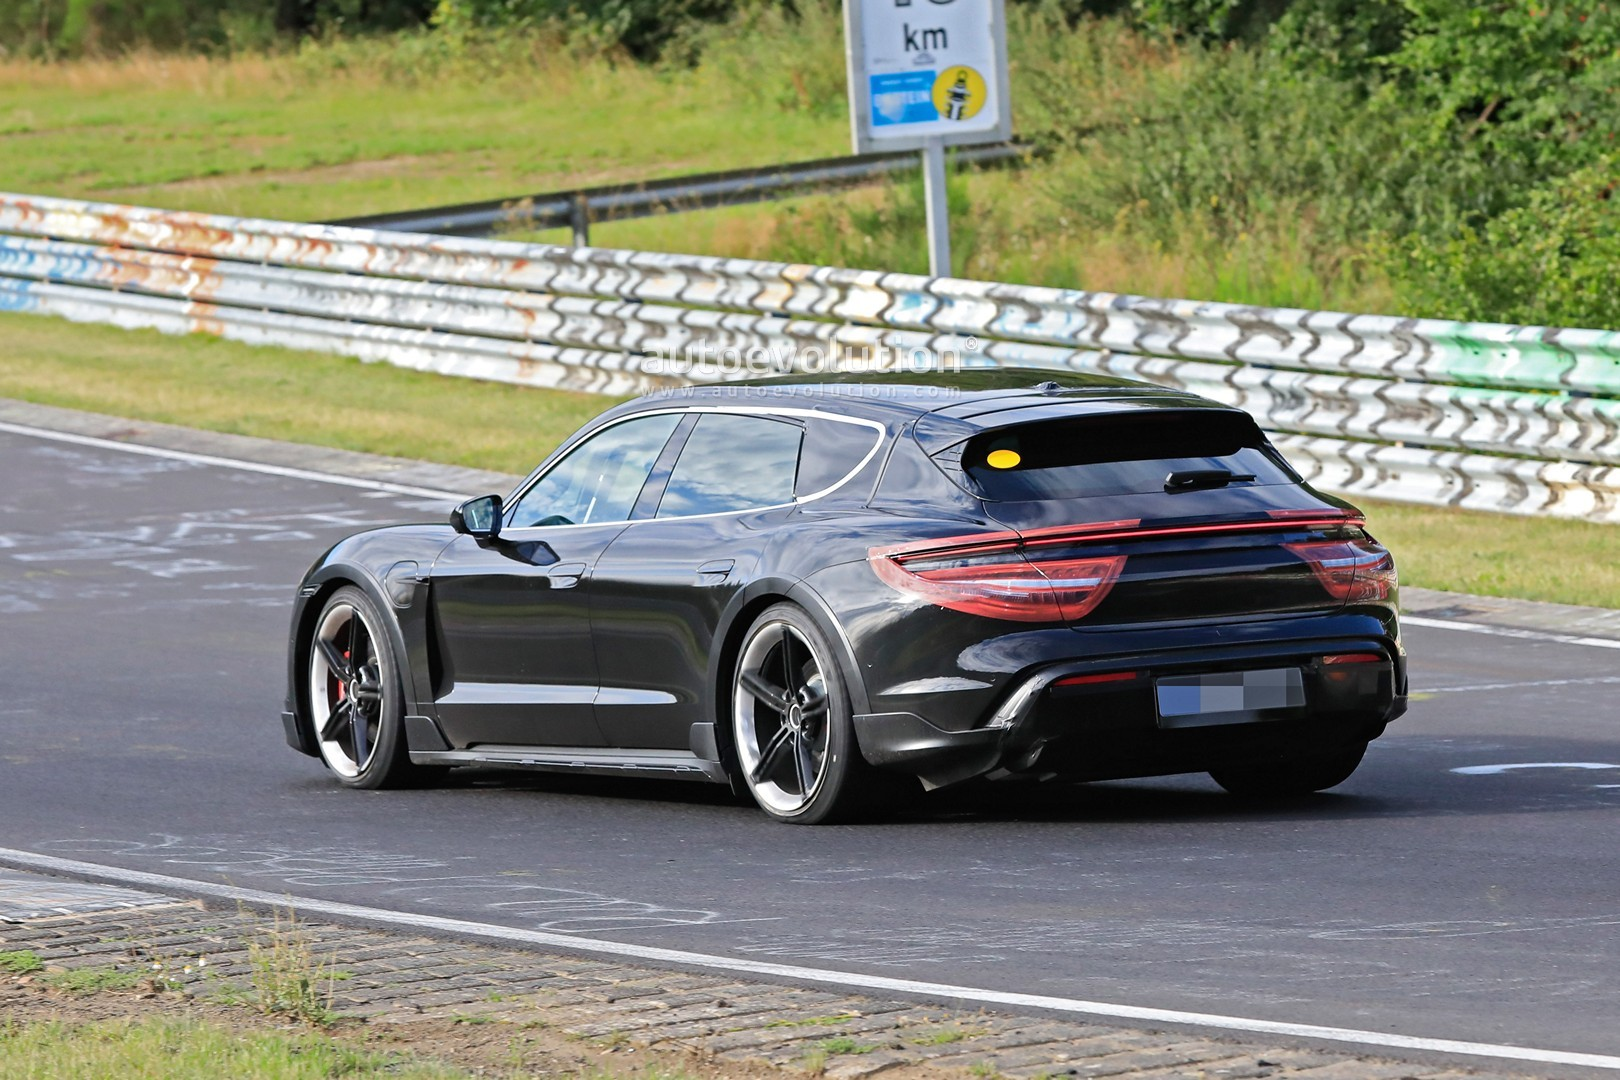 2020 - [Porsche] Taycan Sport Turismo - Page 2 Porsche-taycan-cross-turismo-spied-testing-hard-at-the-nurburgring_6